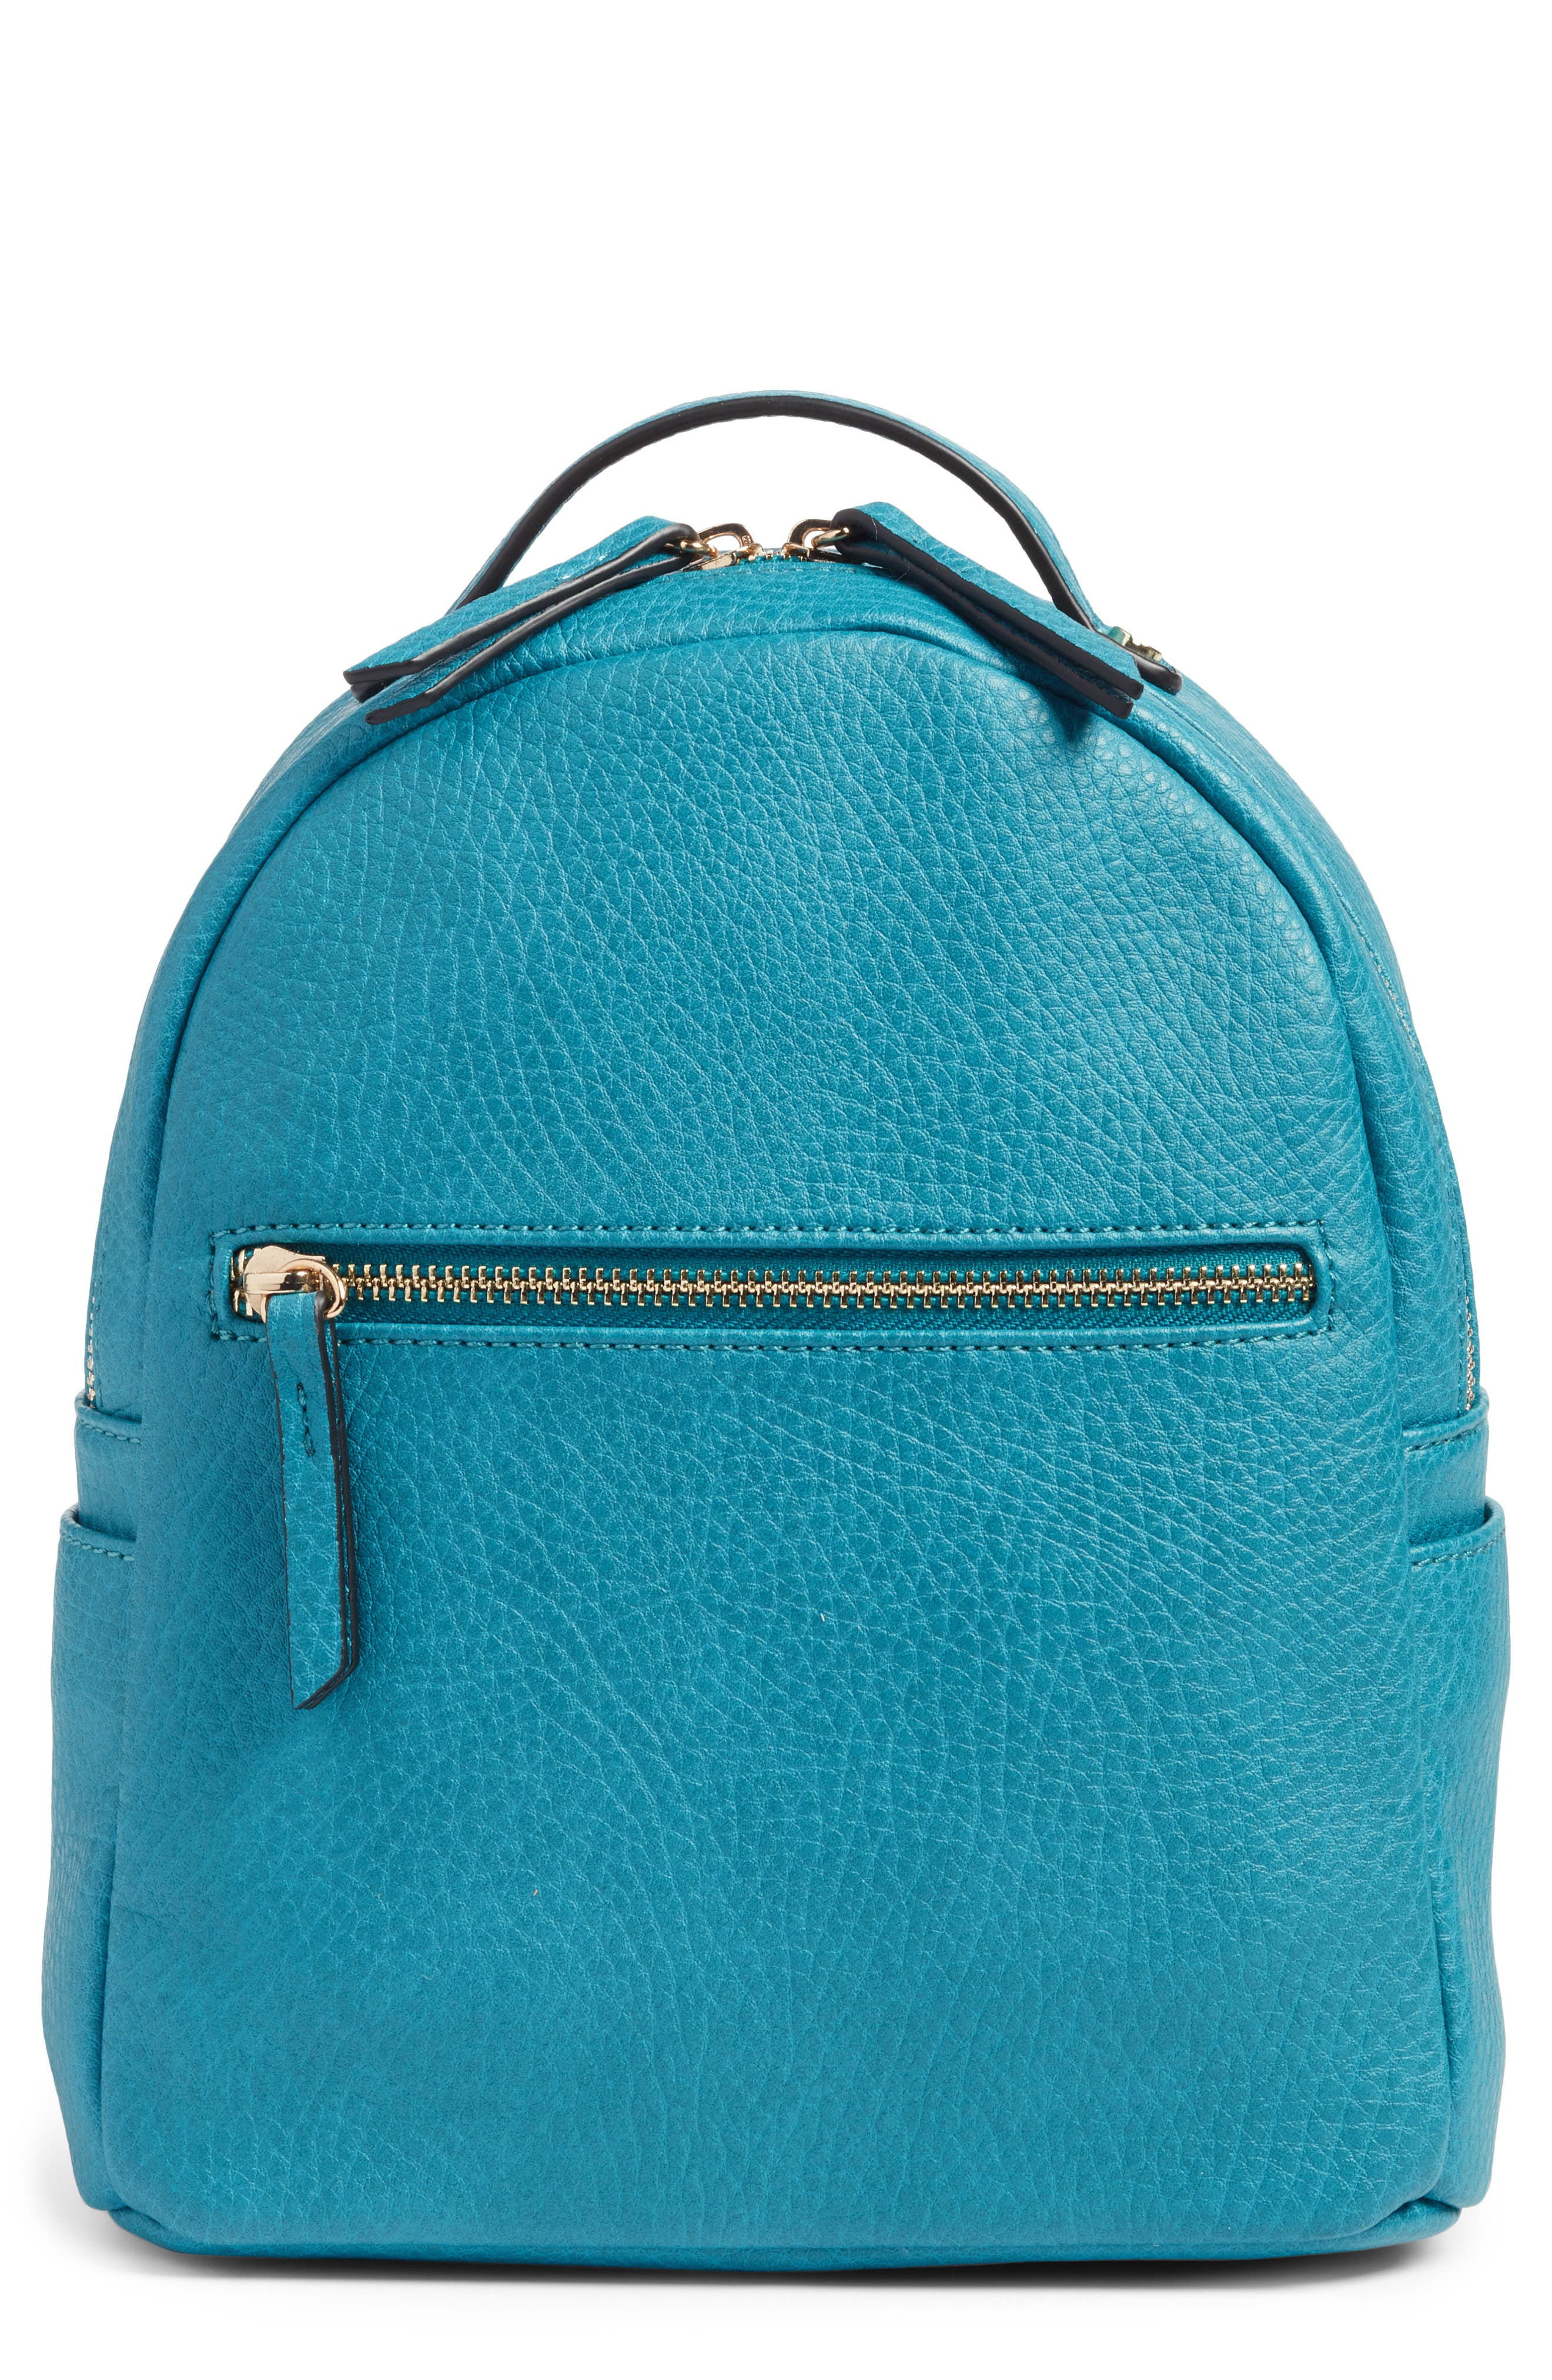 Mali + Lili Vegan Leather Backpack,                         Main,                         color, Blue